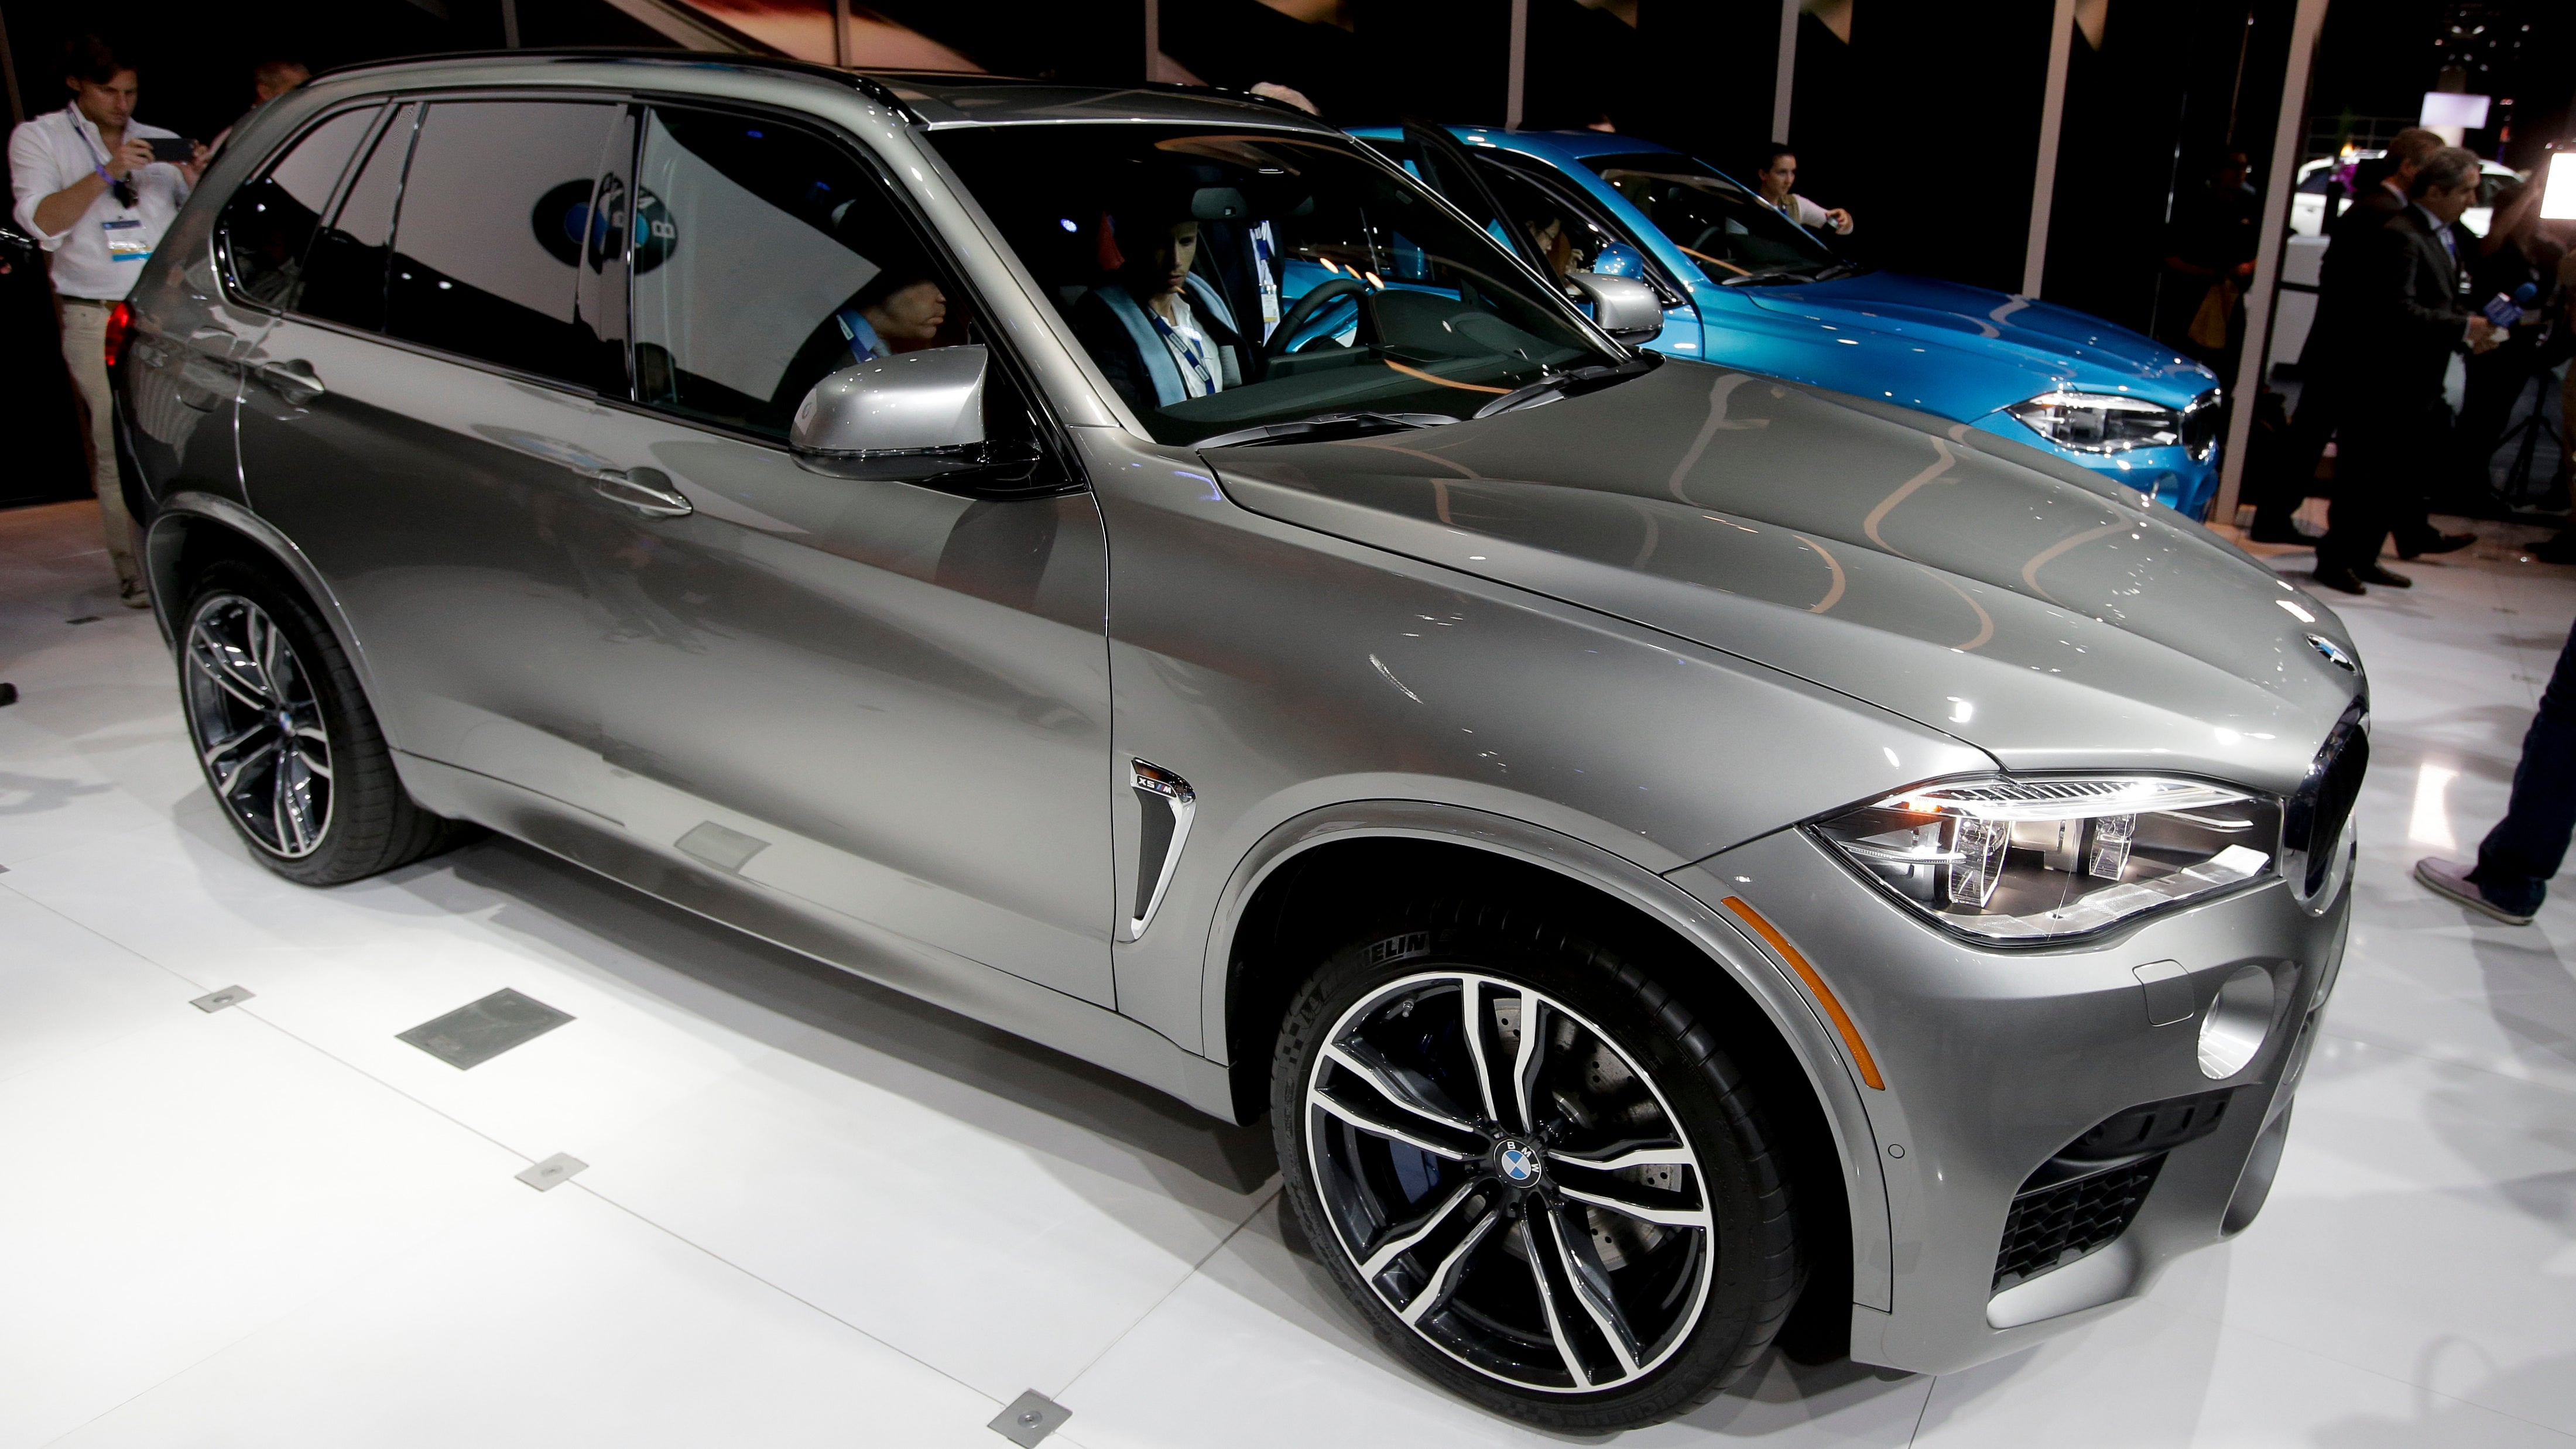 Photo Chris Carlson (AP) & Software Engineer Claims BMW Automatic Door Chopped Off His Thumb